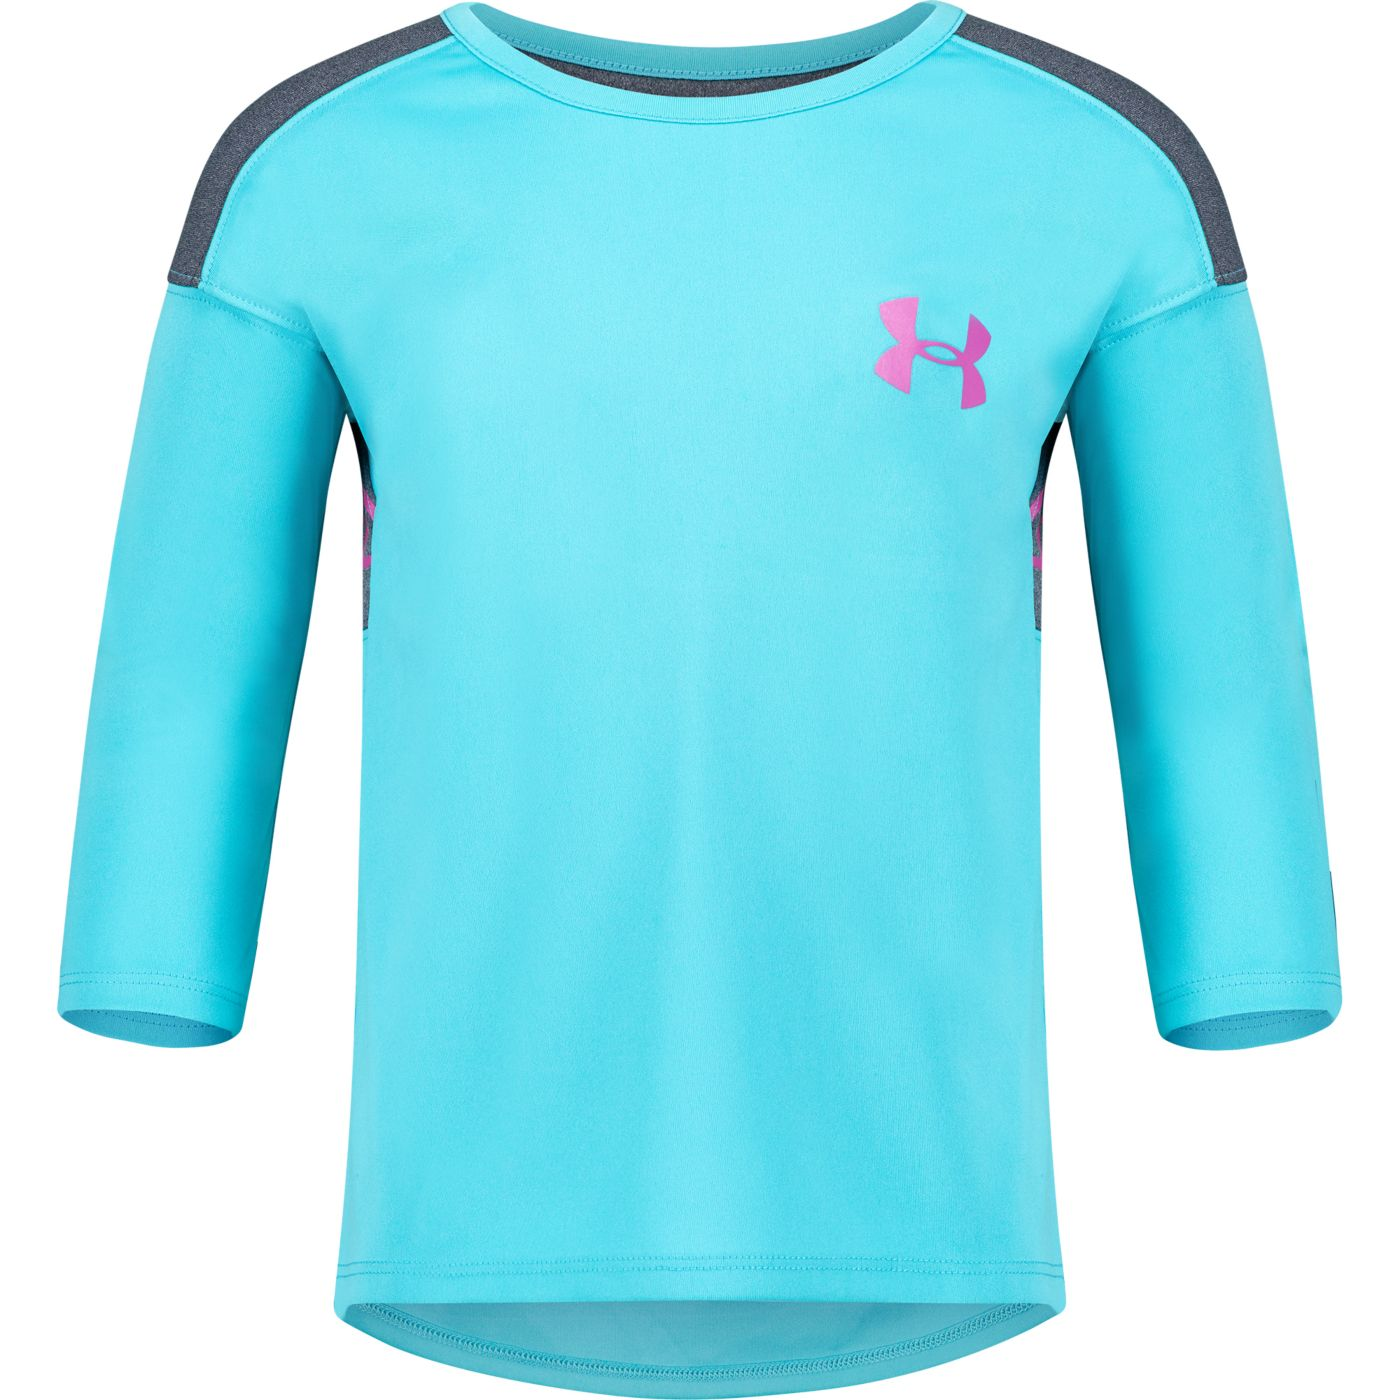 Under Armour Little Girls' Classic Varsity 3/4 Sleeve Shirt